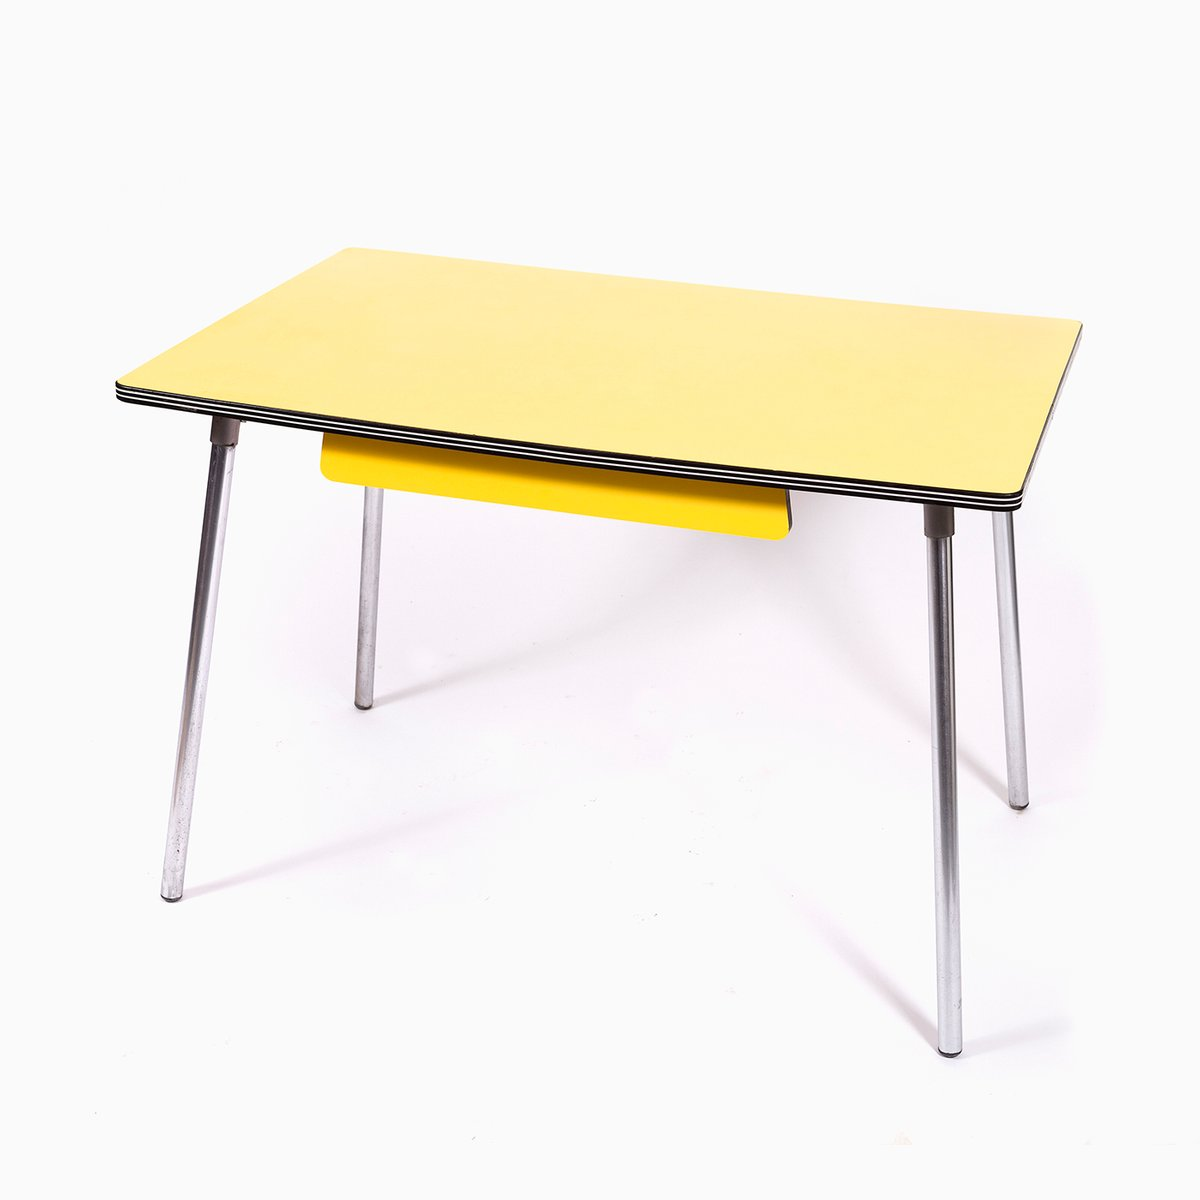 Vintage yellow formica dining table with chrome legs for for Table formica